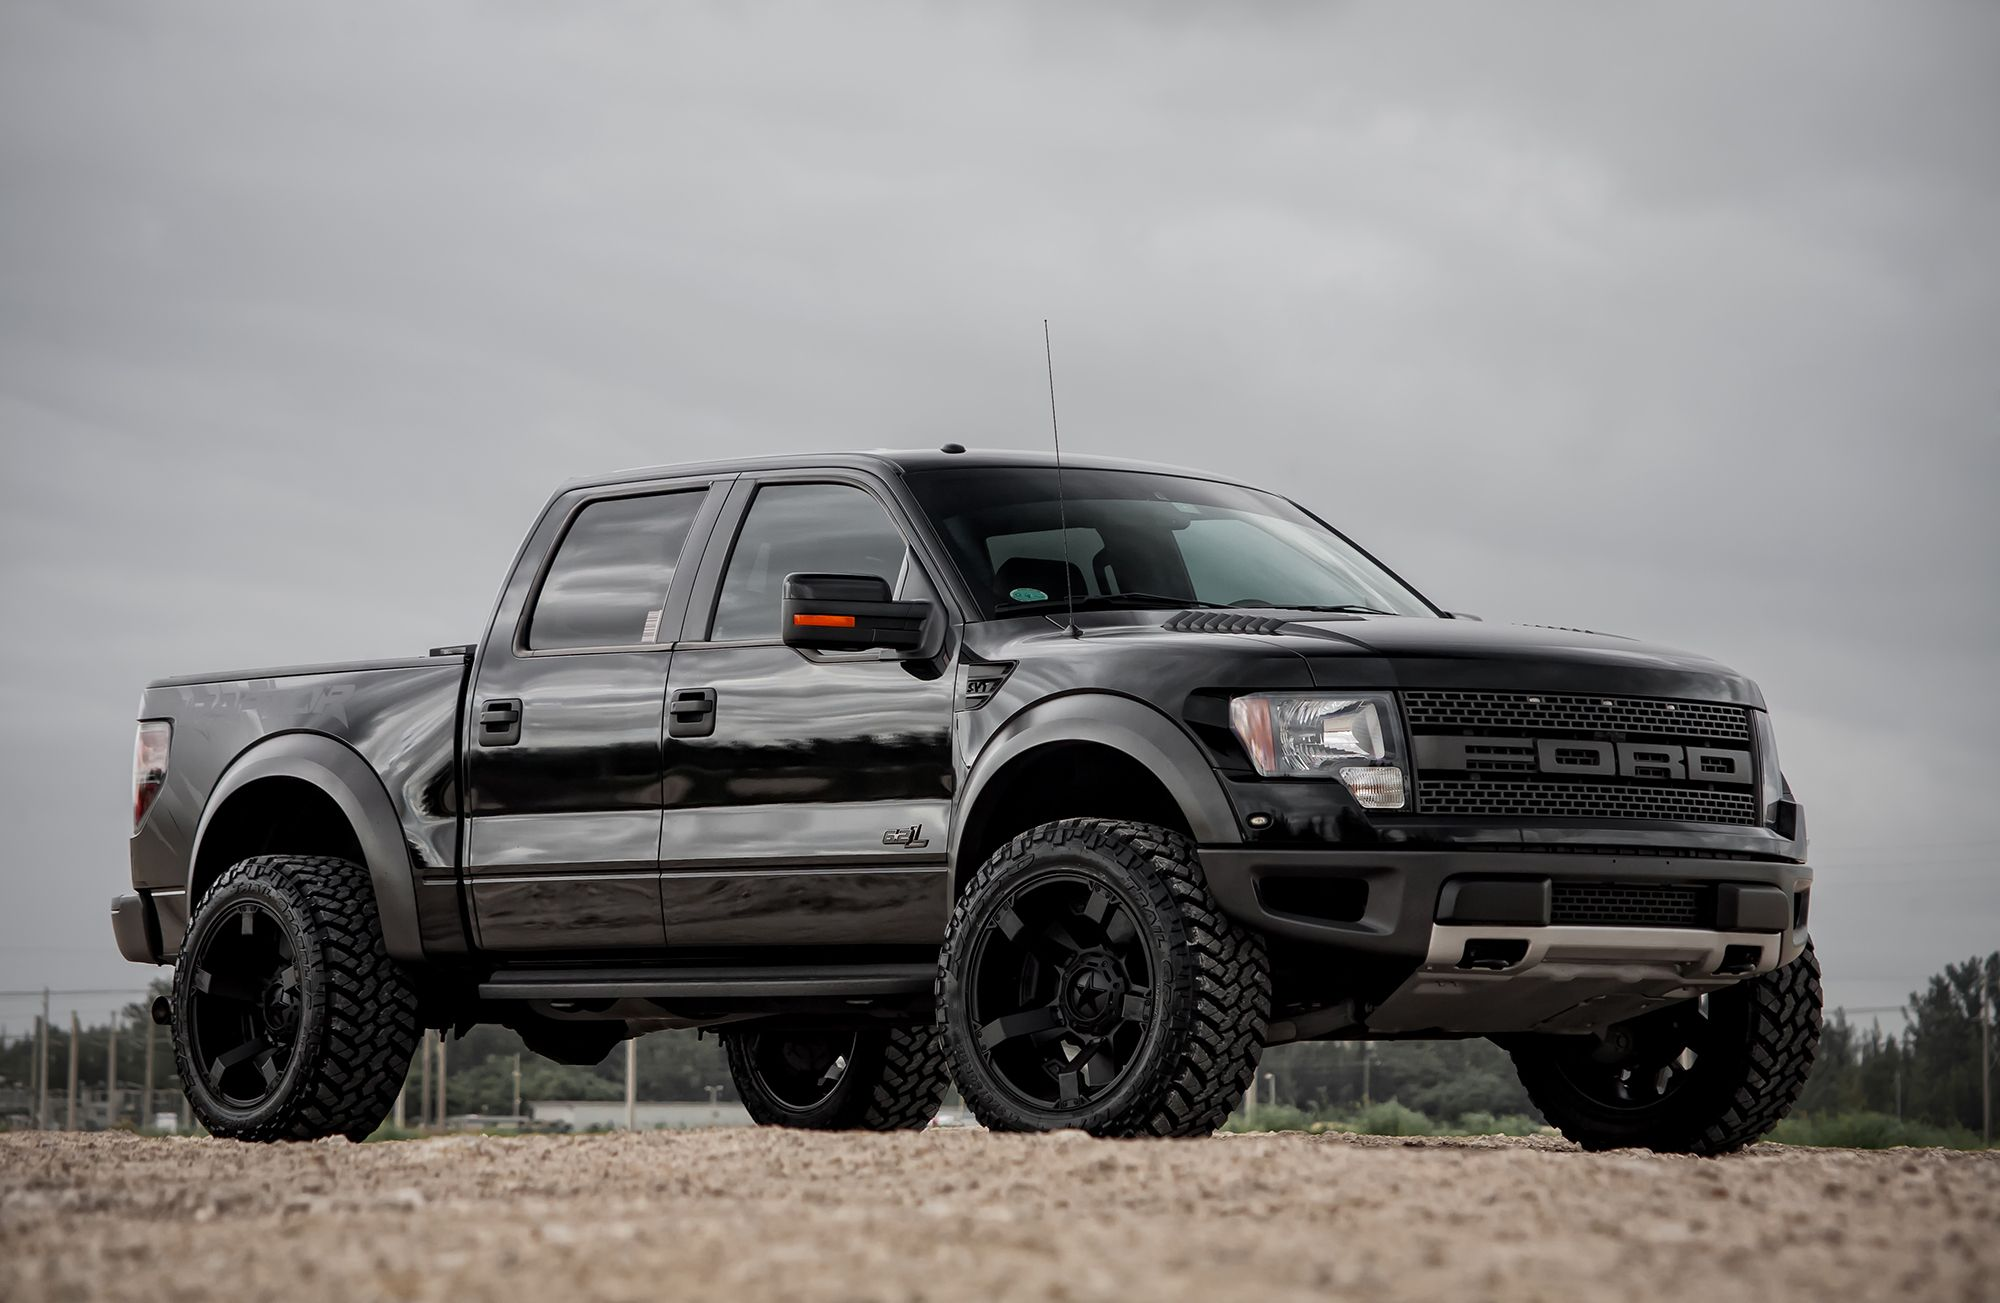 2015 ford raptor review and price the awesome pickup truck like 2015 ford raptor will be a very good options which you should consider to have